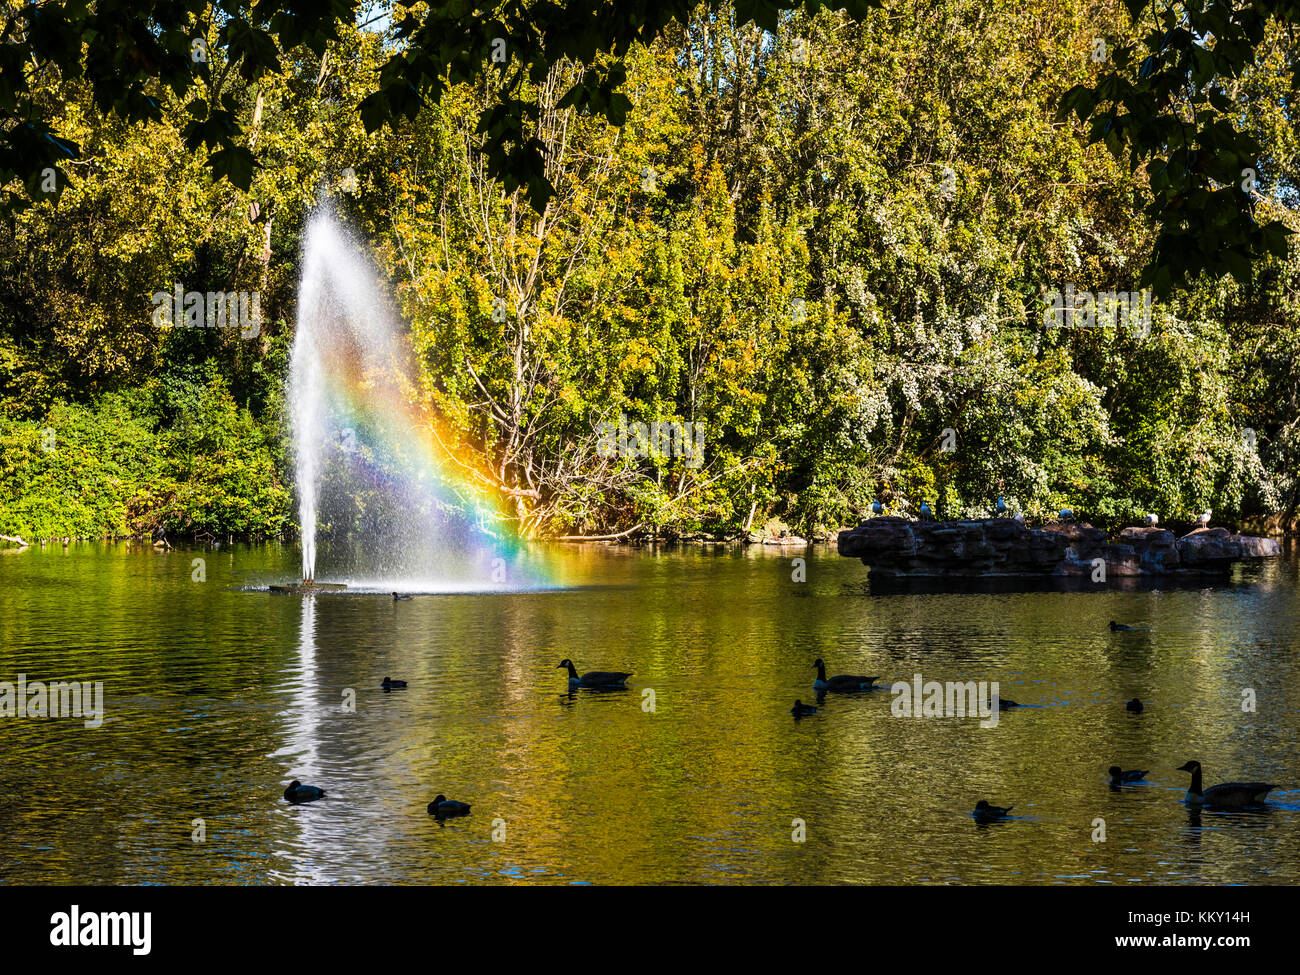 Fountain and rainbow in St James's Park, London, UK - Stock Image